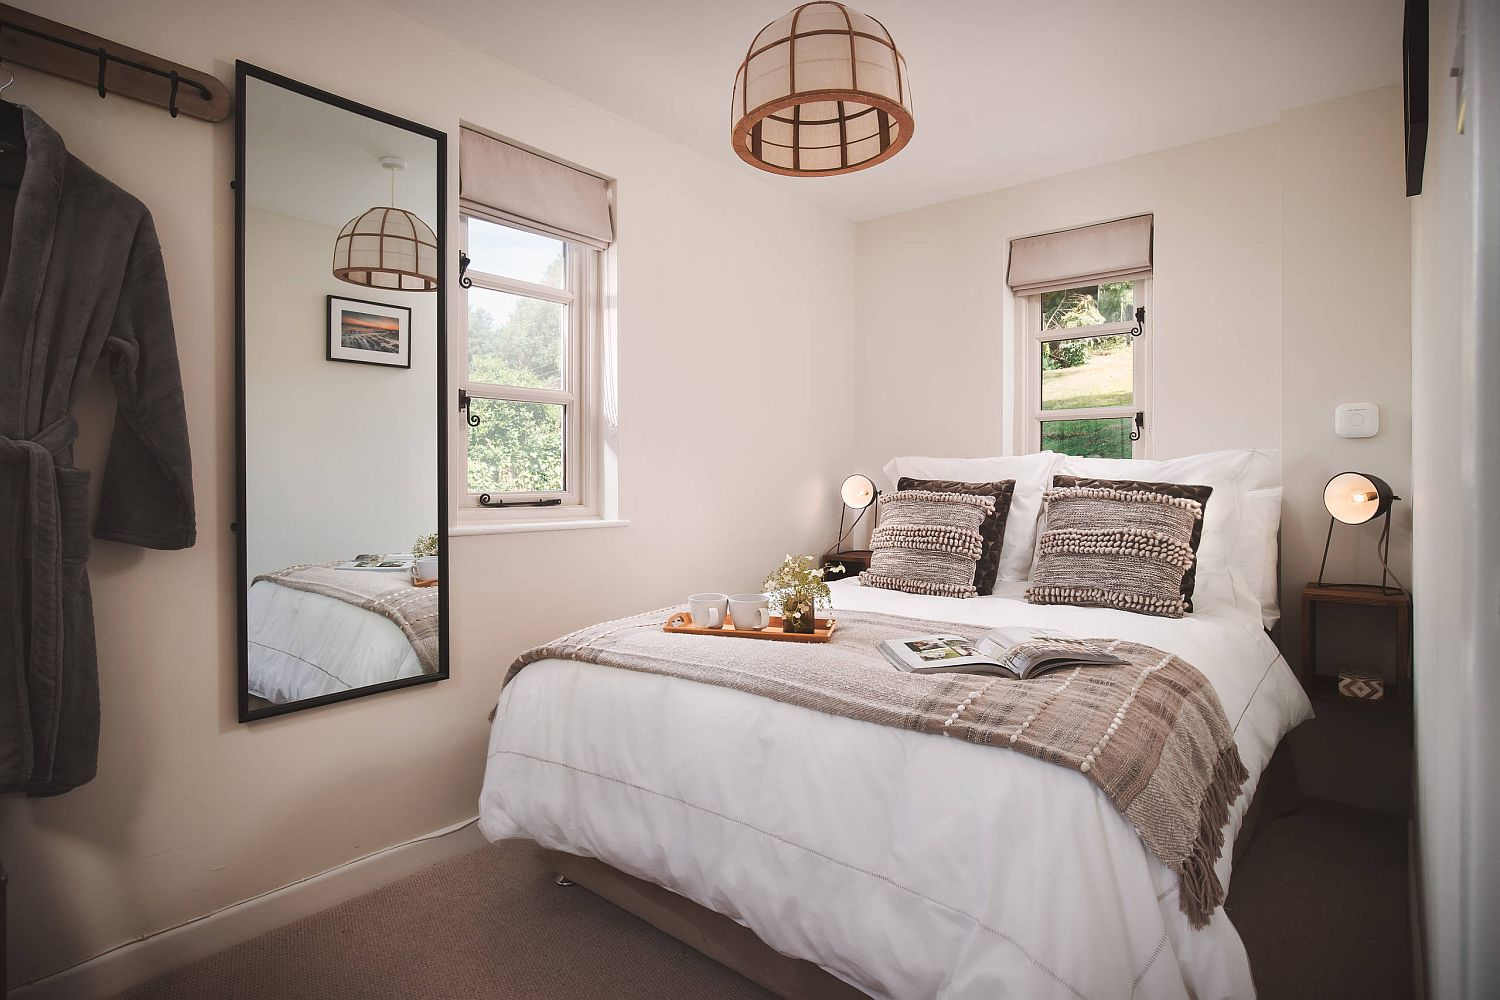 Holiday cottage style coupled with modernity inside the small bedroom in white and wood